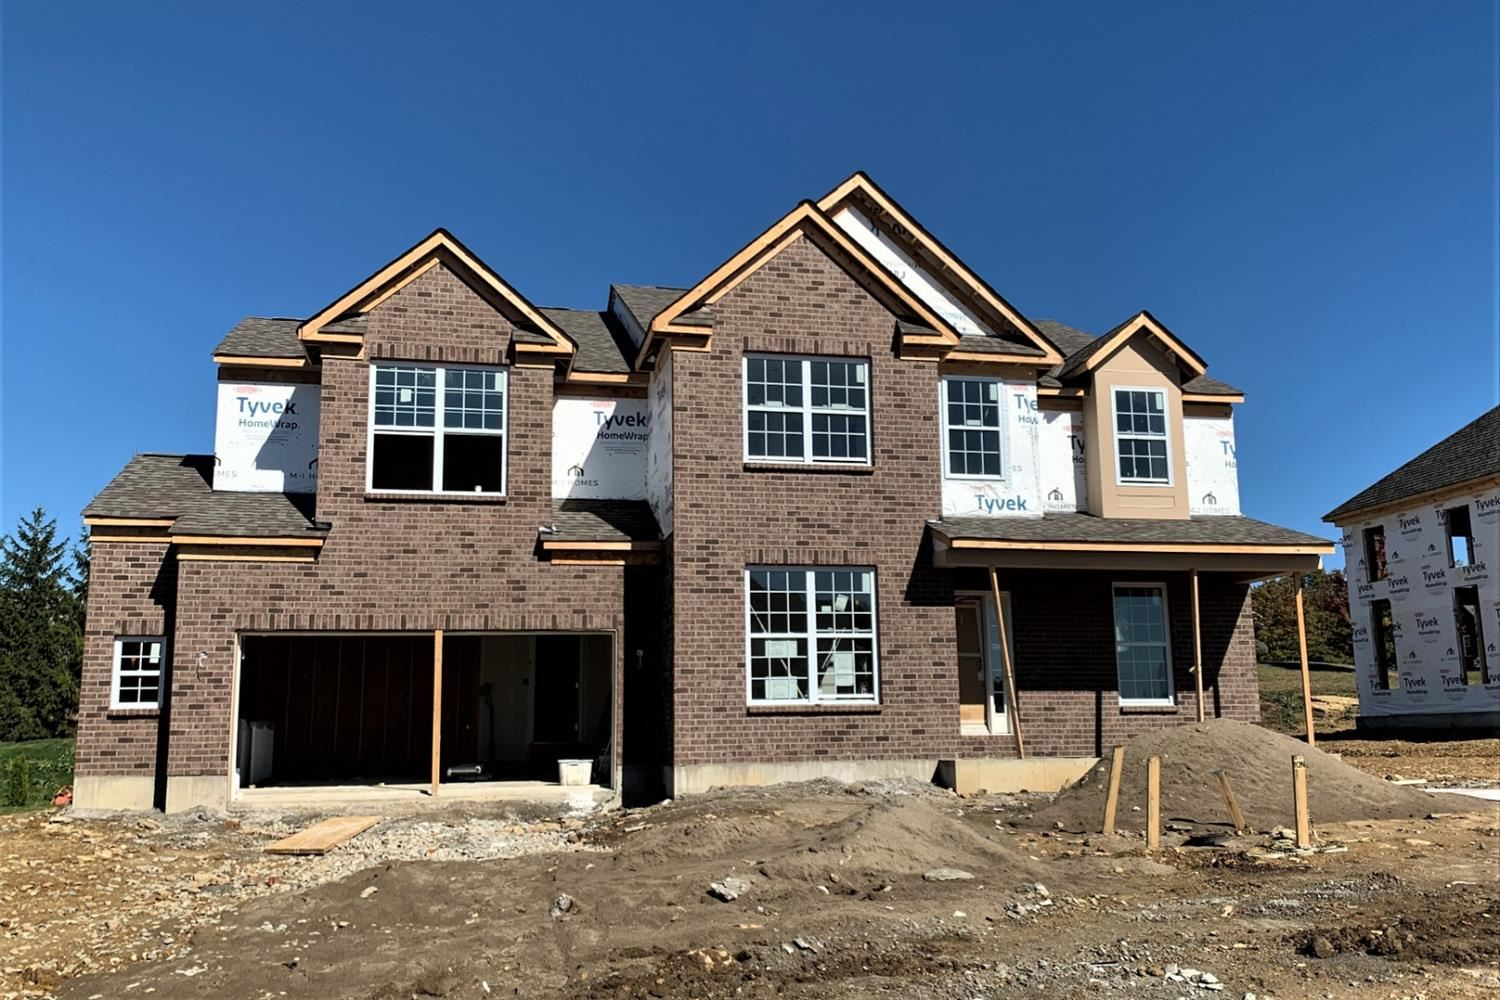 4522 Tylers Vista #32, West Chester, OH 45069 - #: 1671937